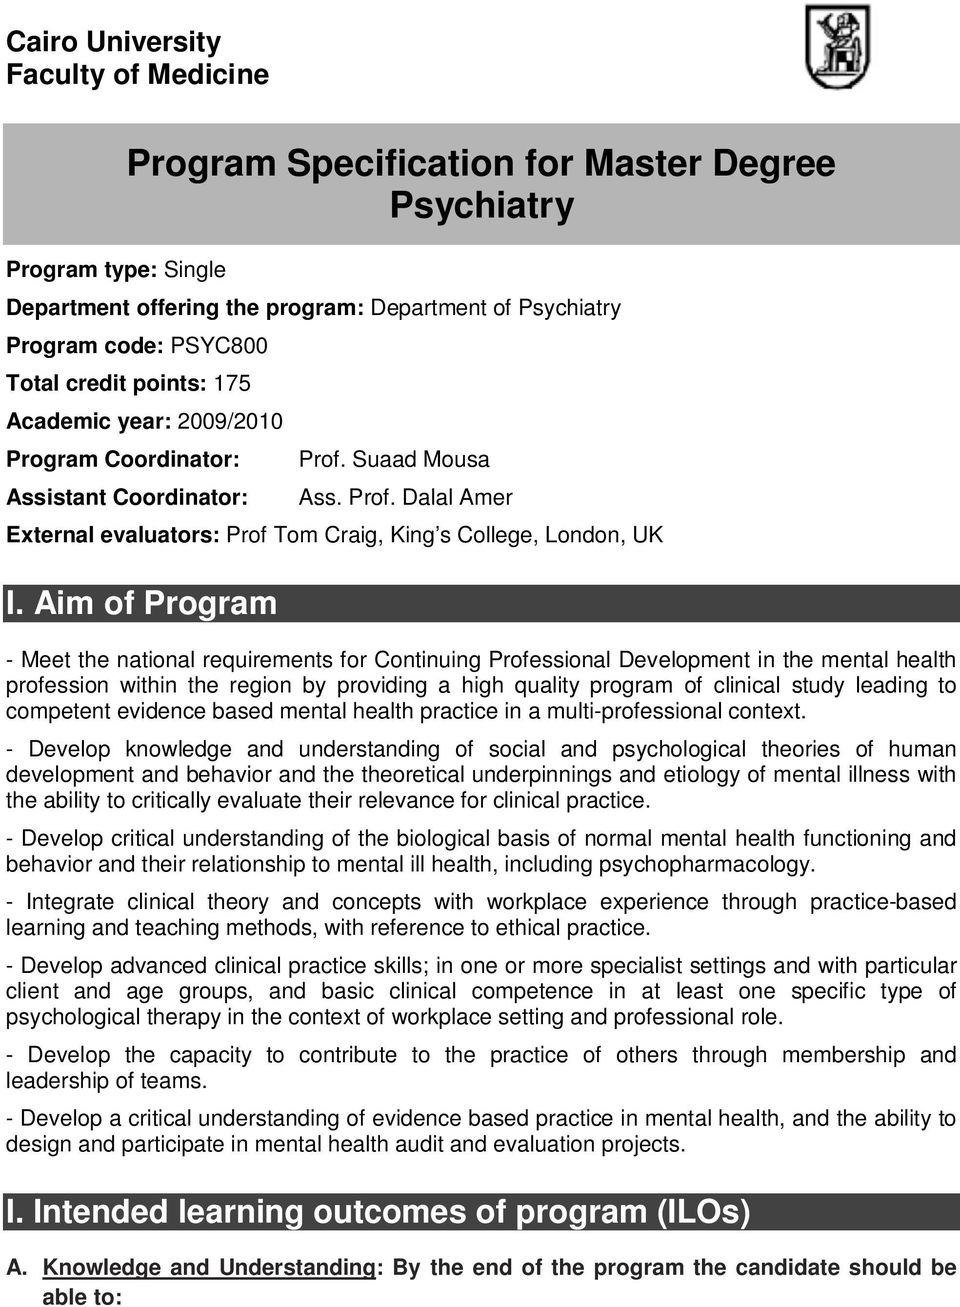 Aim of Program - Meet the national requirements for Continuing Professional Development in the mental health profession within the region by providing a high quality program of clinical study leading